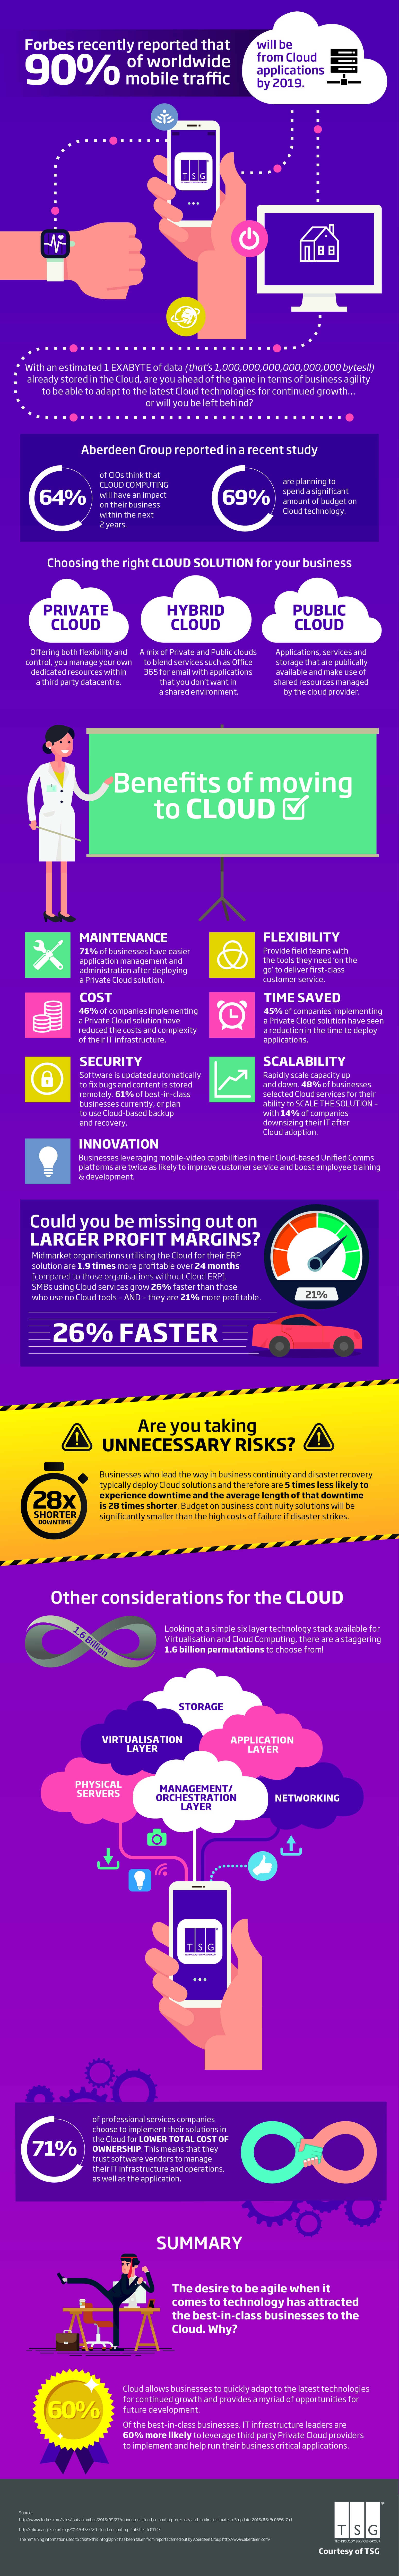 Infographic created by UK IT Support Solutions Company, TSG